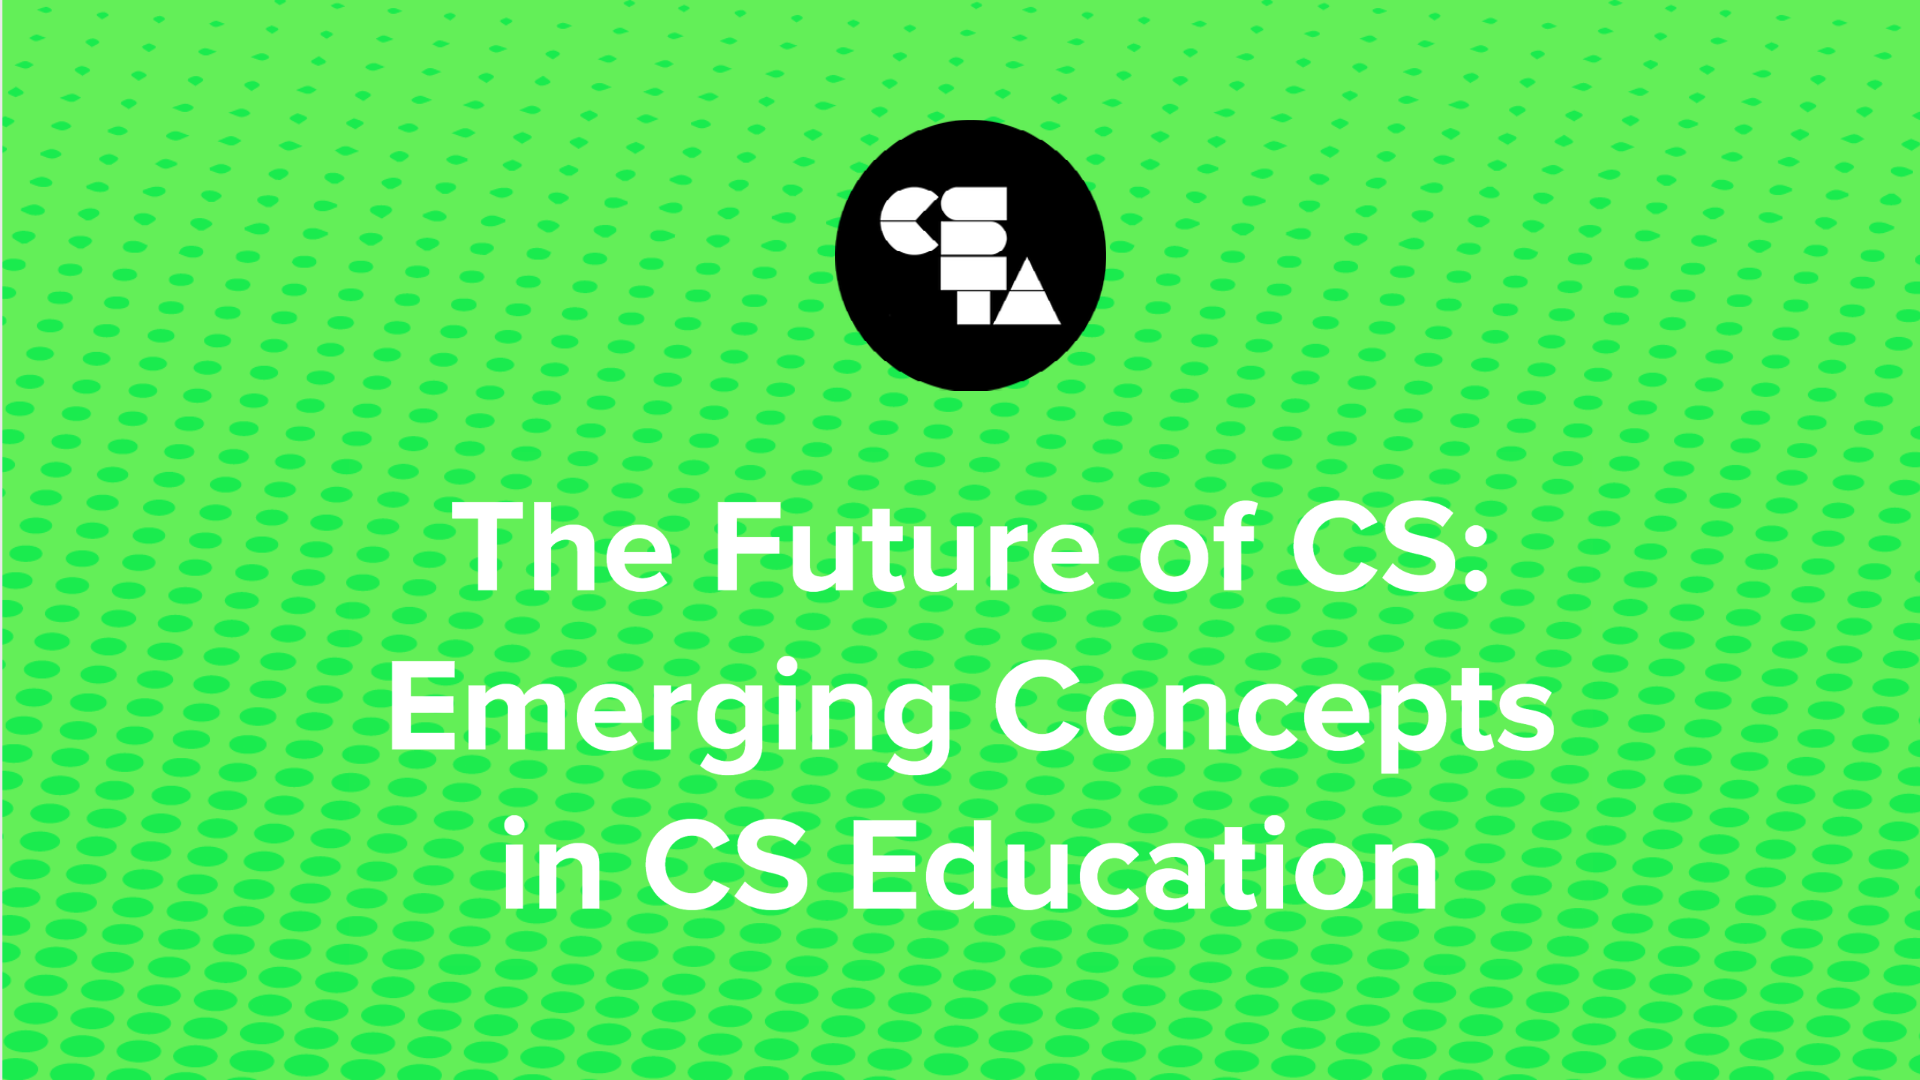 The Future of CS: Emerging Concepts in CS Education